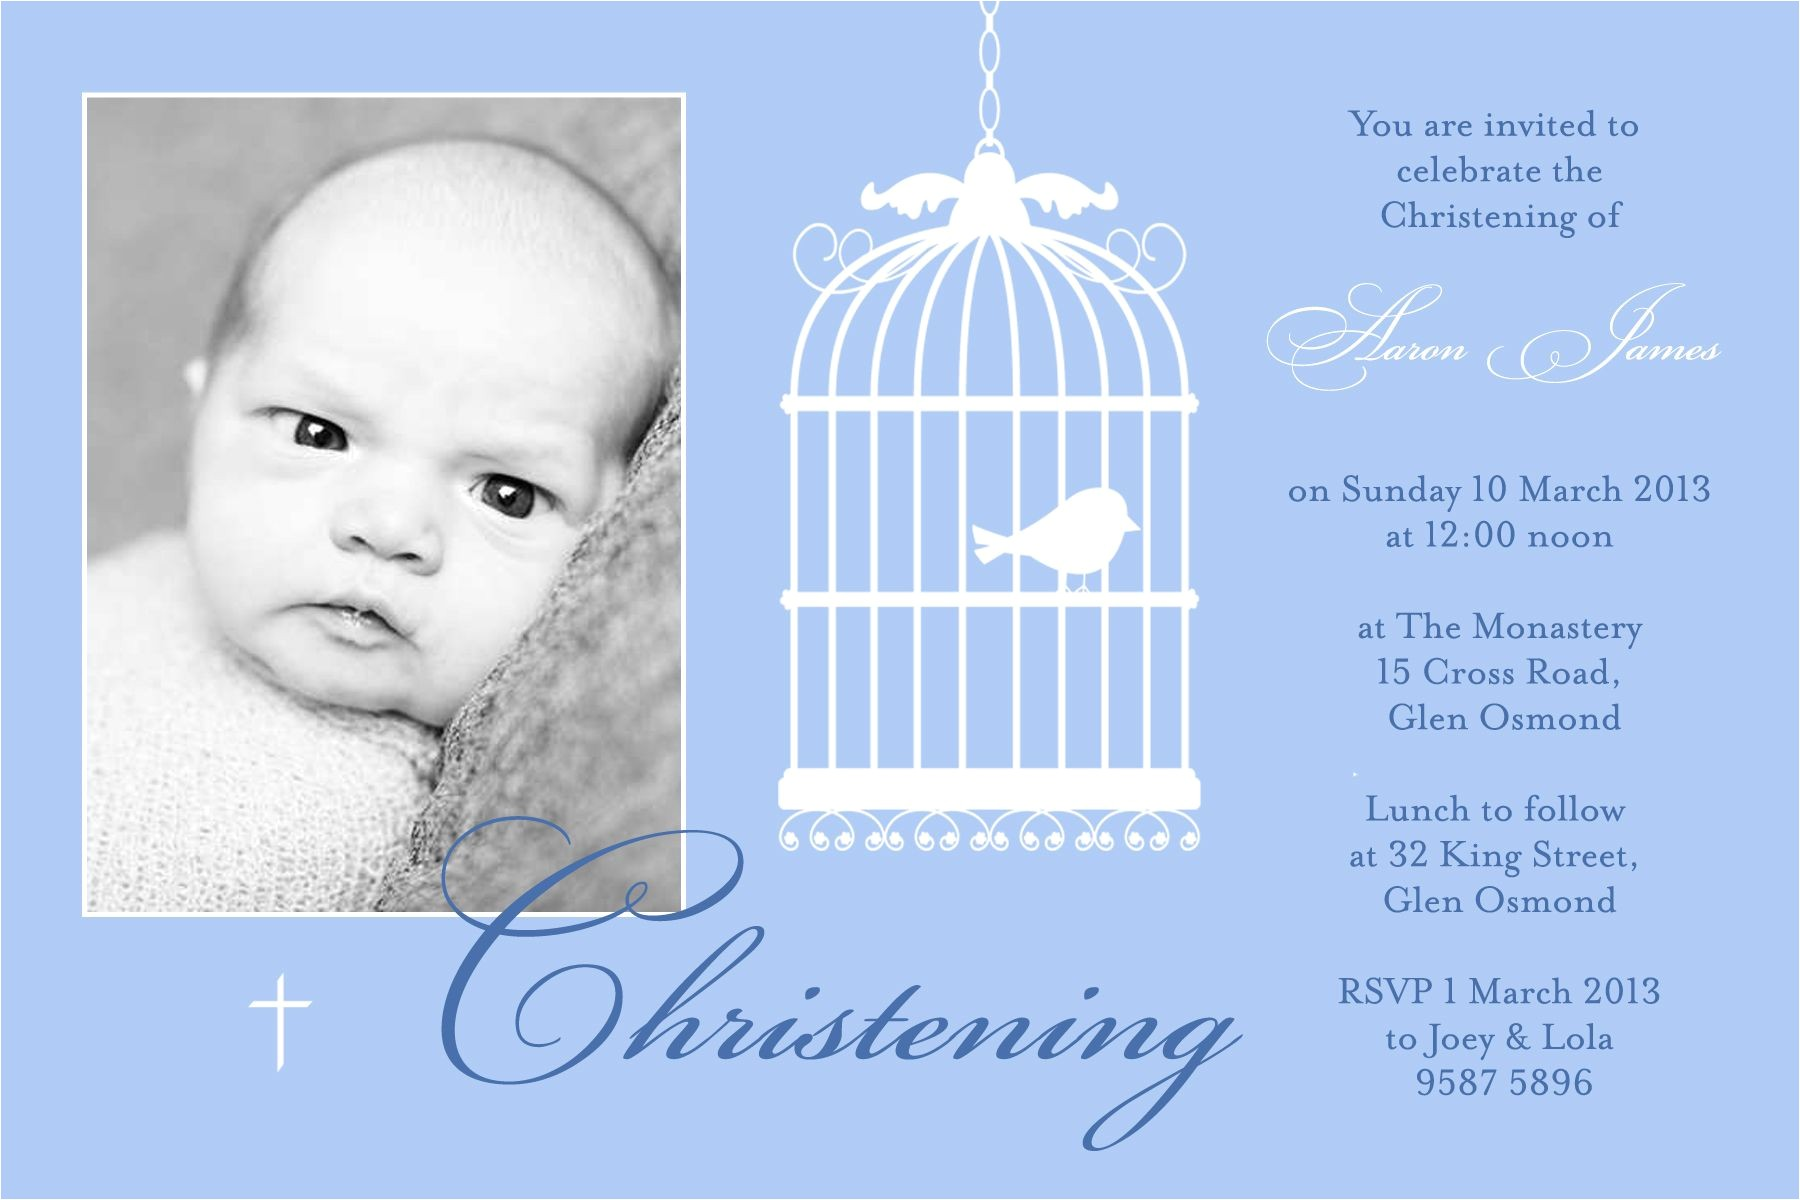 christening invitation for baby boy templates